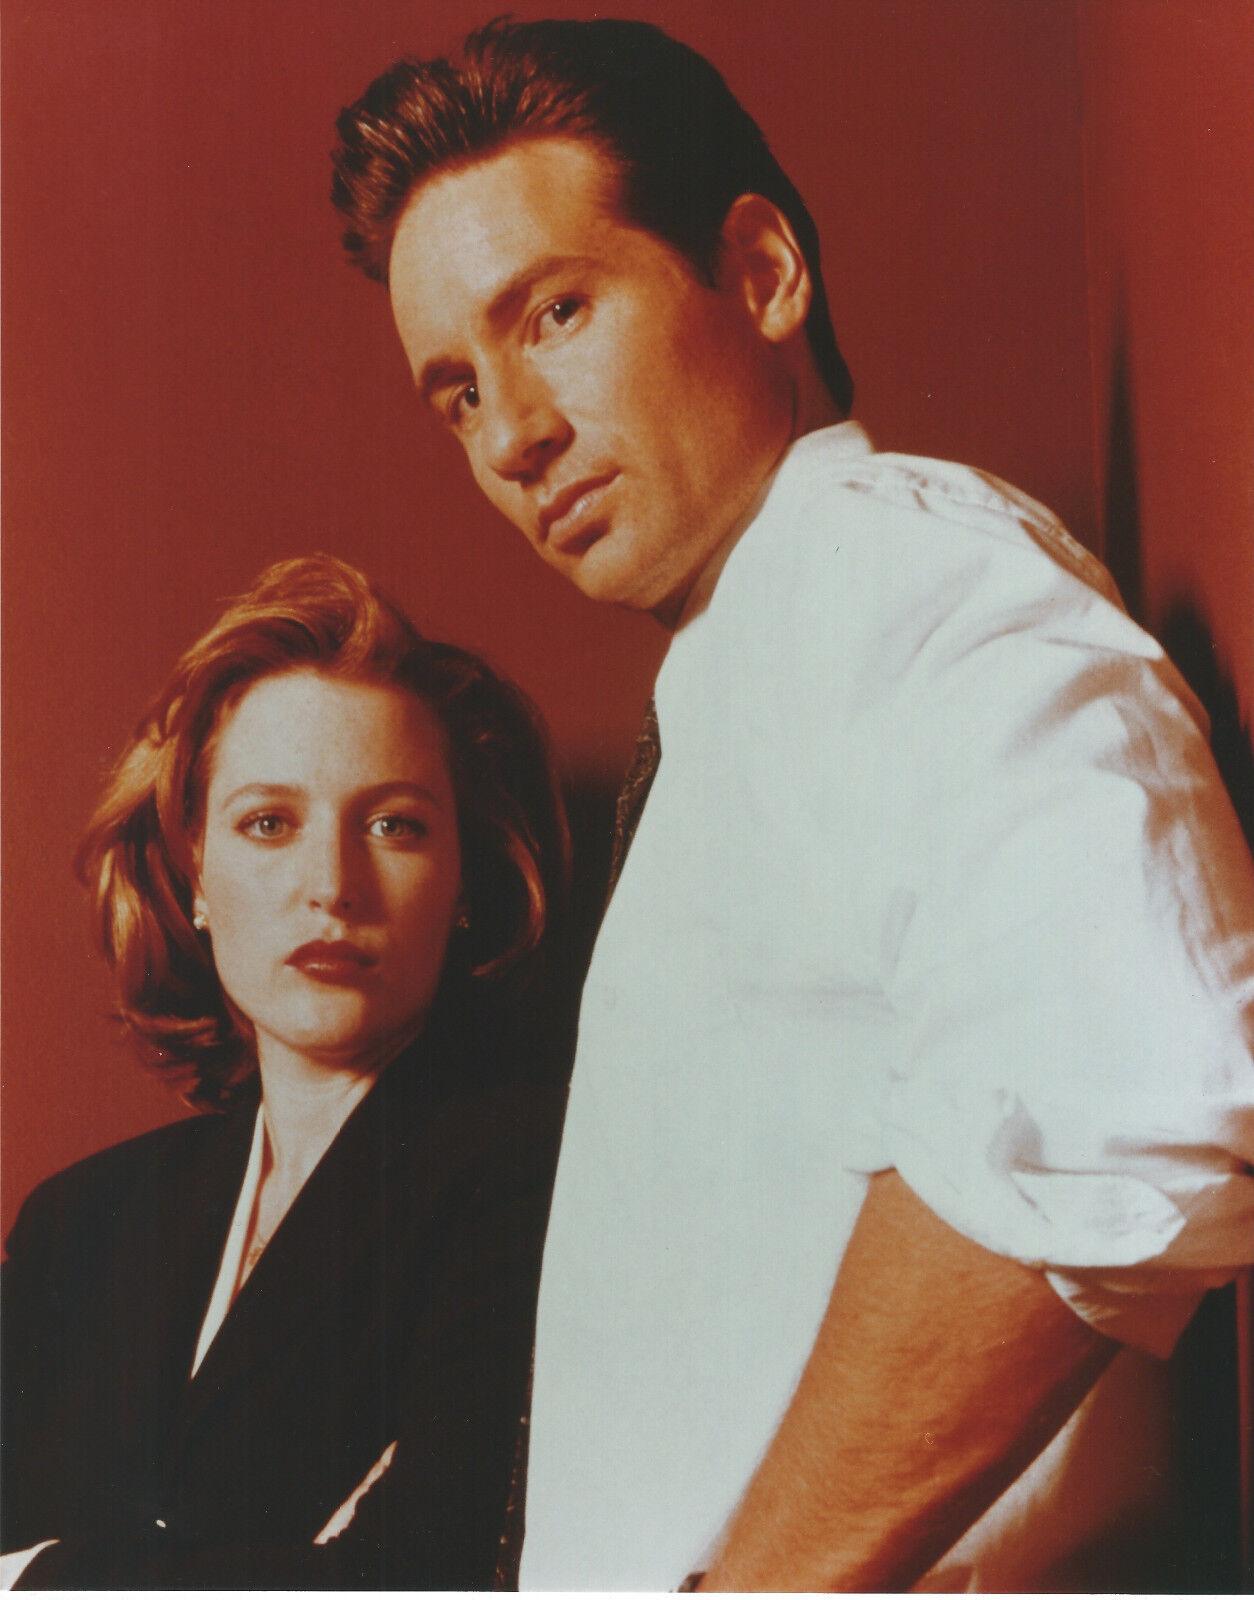 X-FILES 8 X 10 PHOTO WITH ULTRA PRO TOPLOADER - $3.99